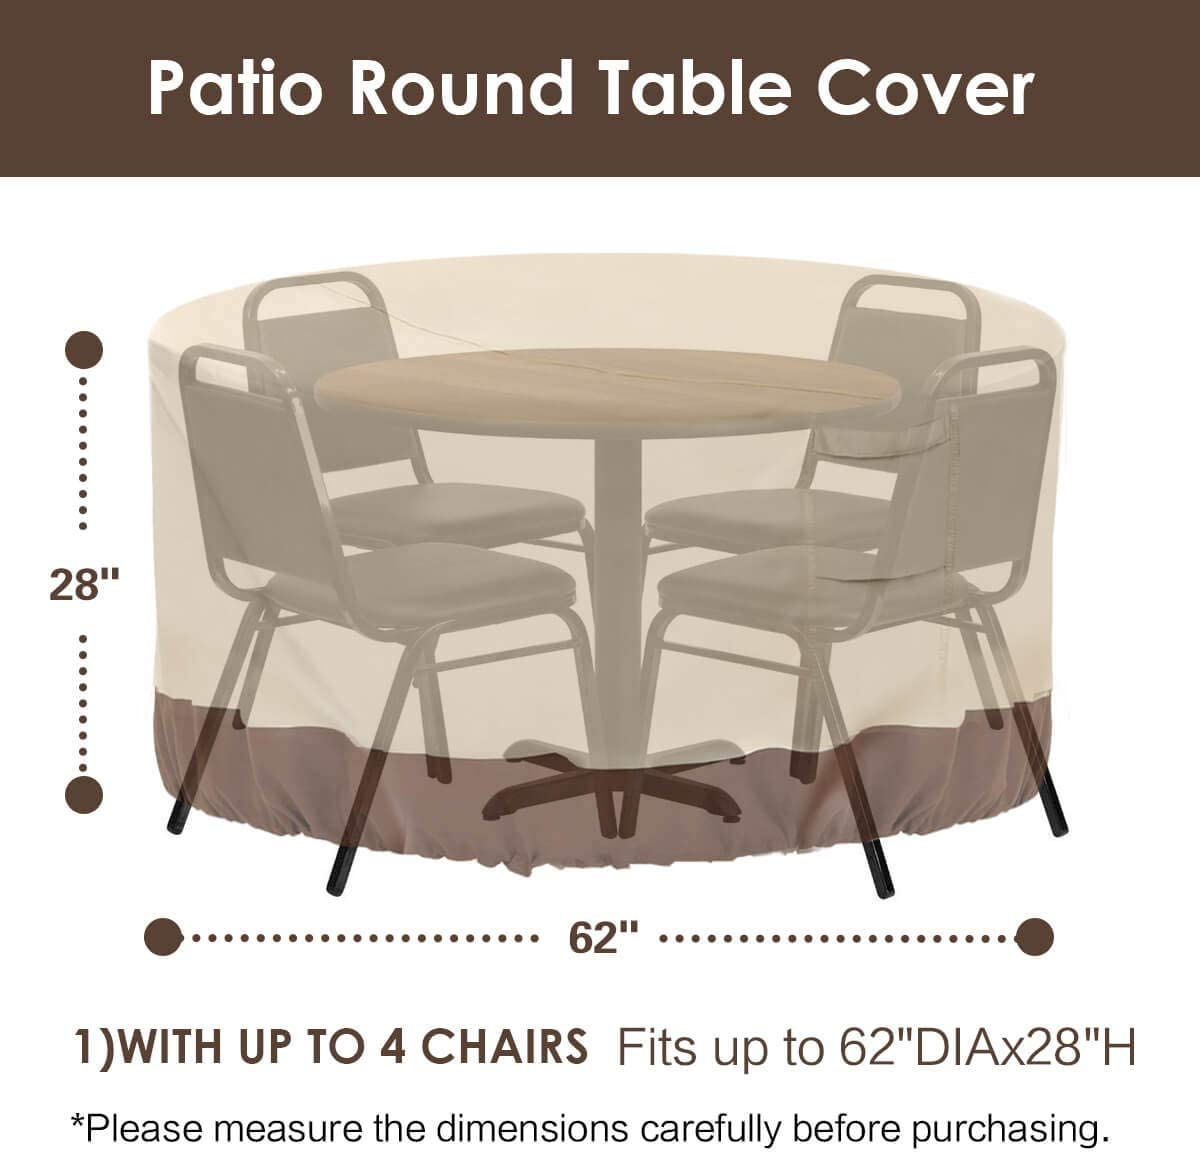 """Vailge Round Patio Furniture Covers, 100% Waterproof Outdoor Table Chair Set Covers, Anti-Fading Cover for Outdoor Furniture Set, UV Resistant, 62"""" DIAx28 H,Beige & Brown: Kitchen & Dining"""